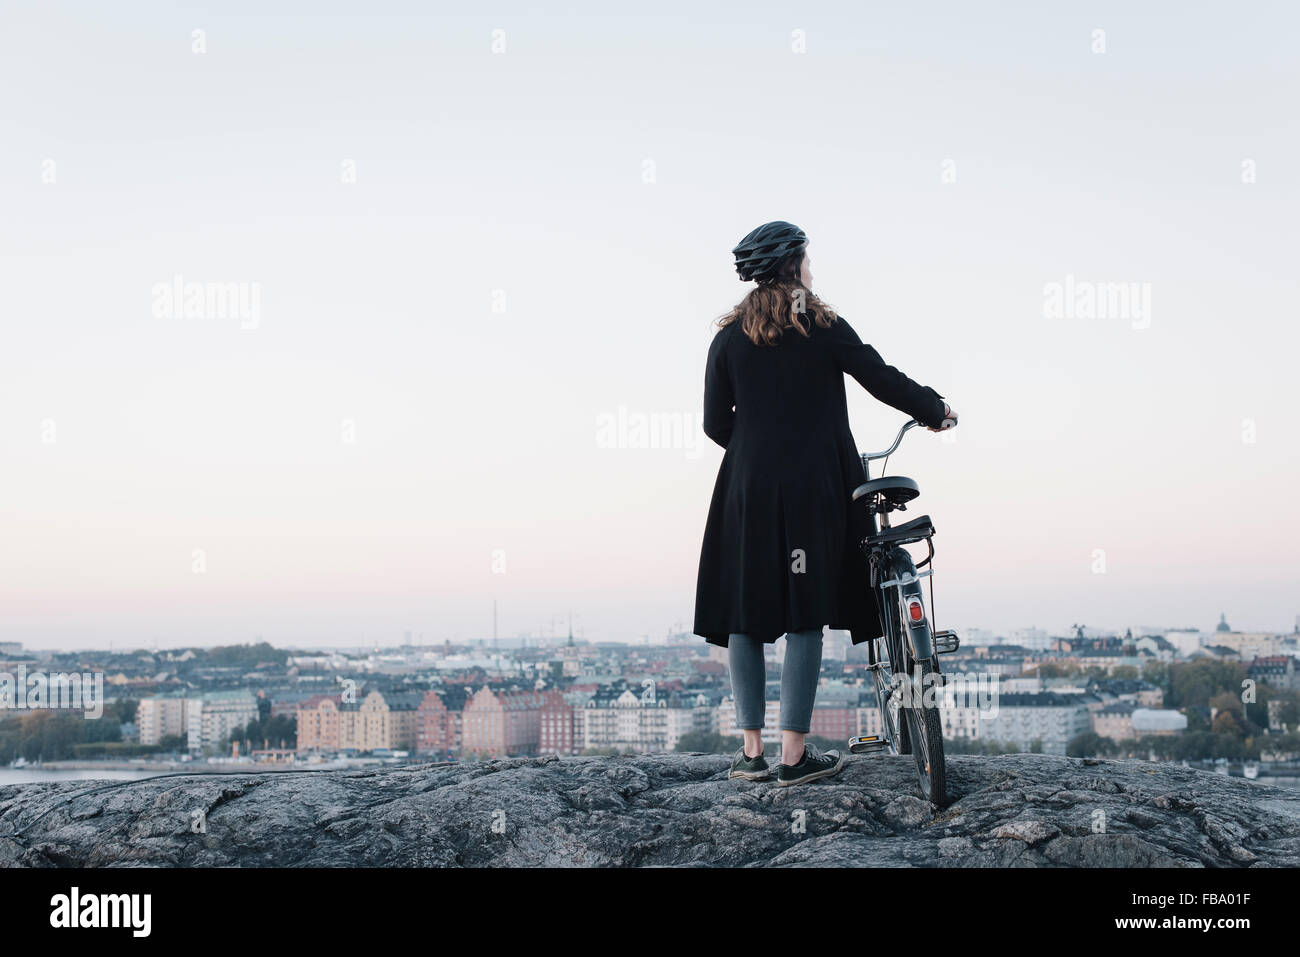 Sweden, Sodermanland, Stockholm, Sodermalm, Skinnarviksberget, Rear view of young woman standing by bicycle on rock - Stock Image